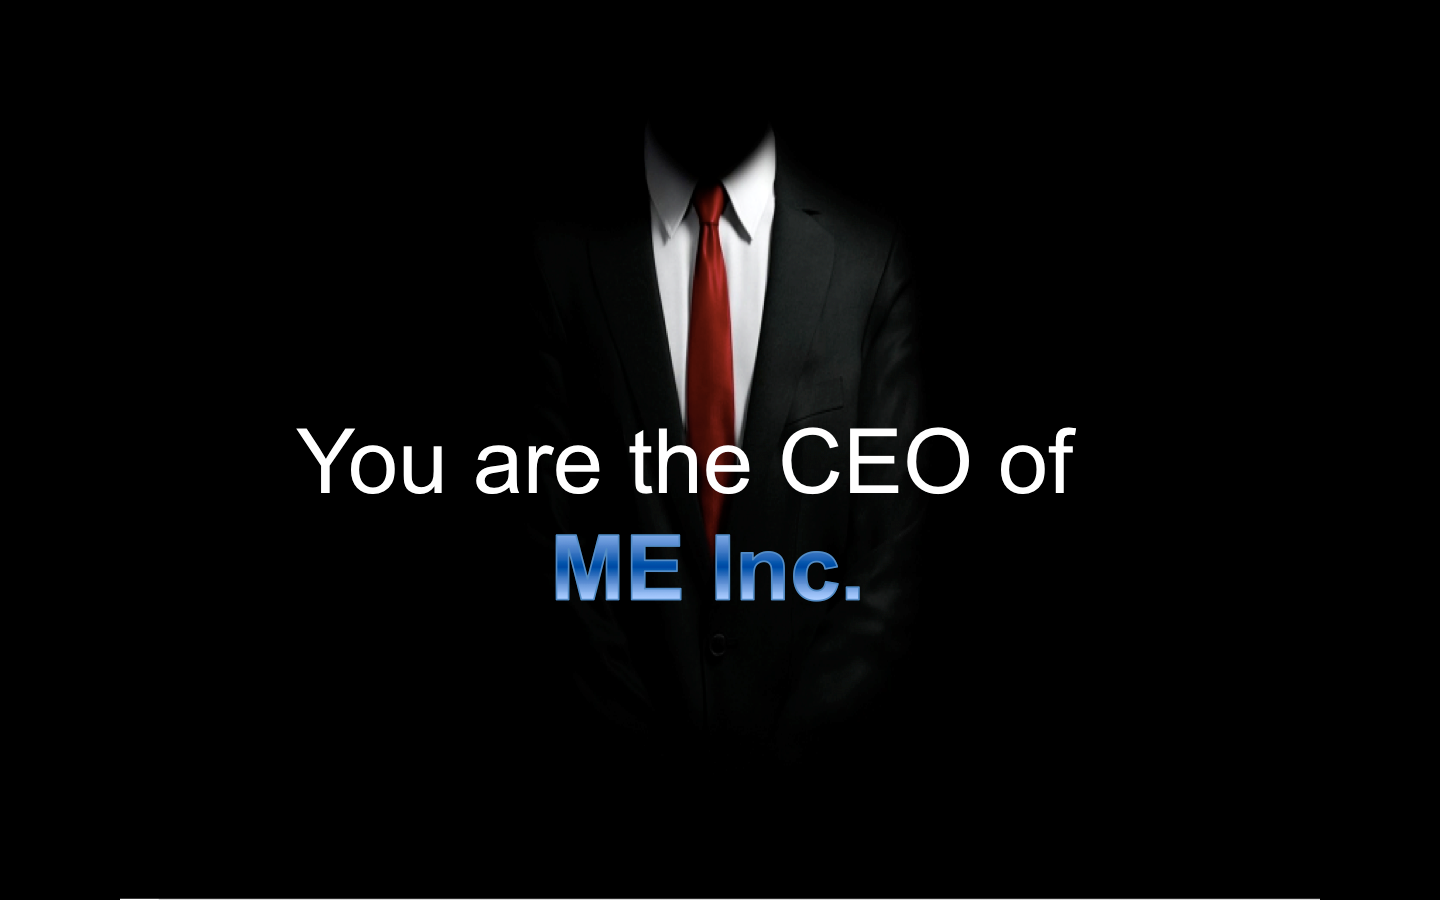 ceo_of_me_inc